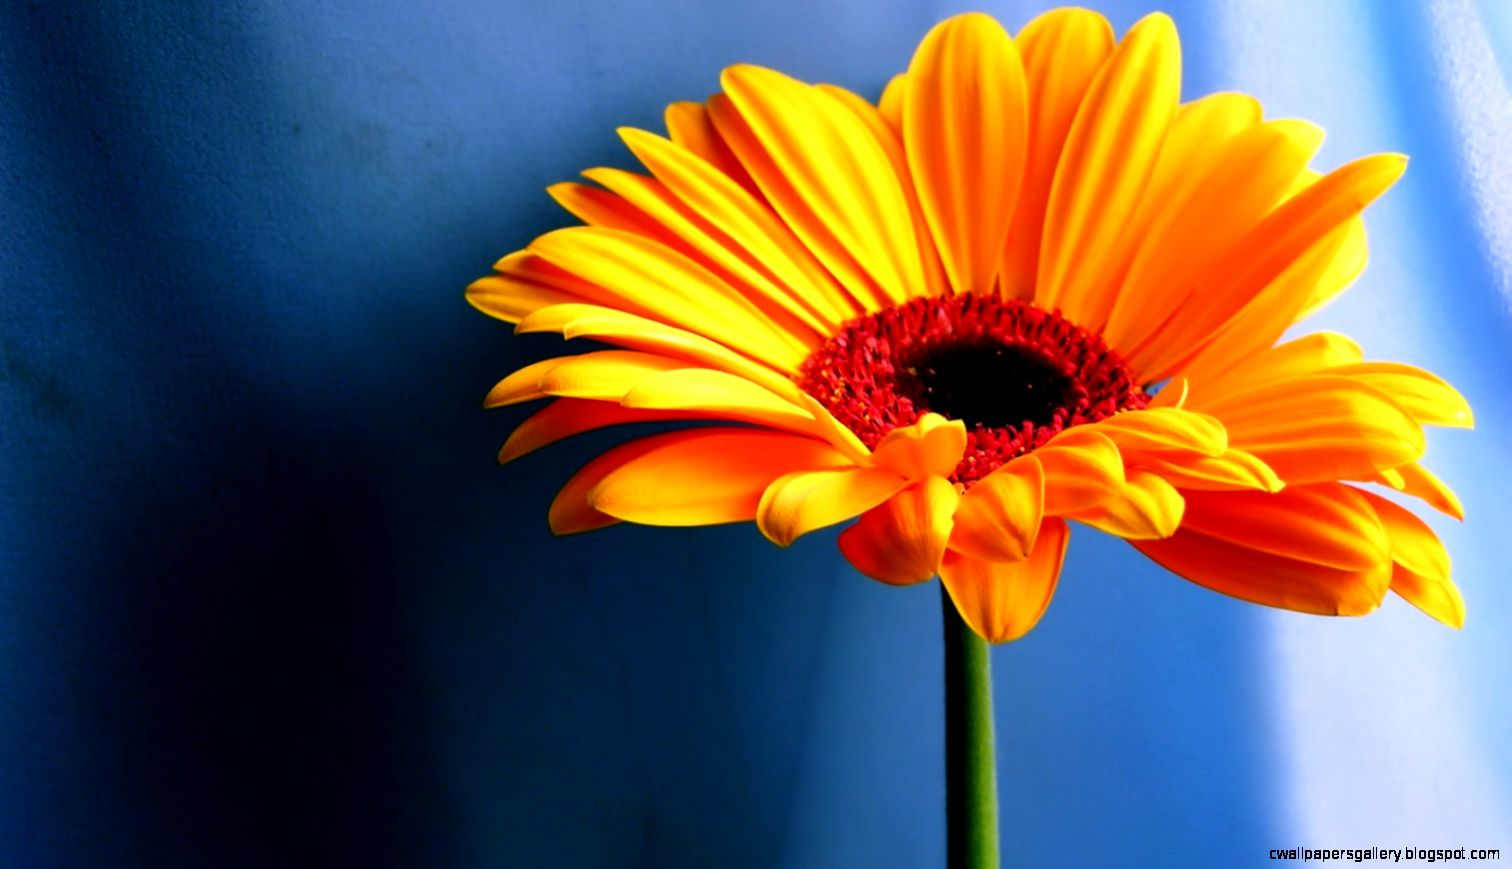 Collection of Flower Desktop Wallpaper Images on